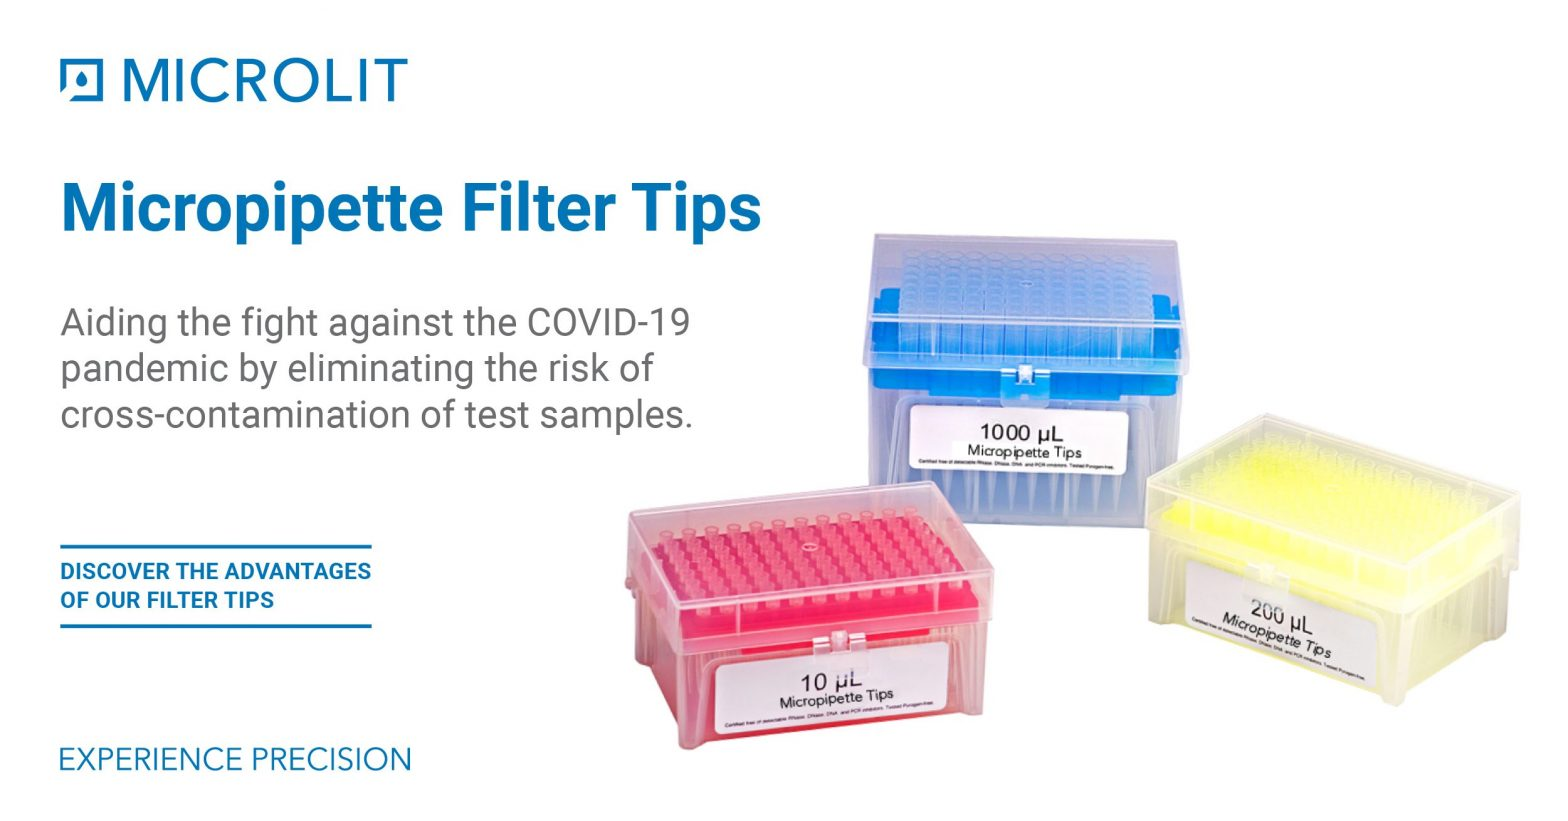 Micropipette Filter tips